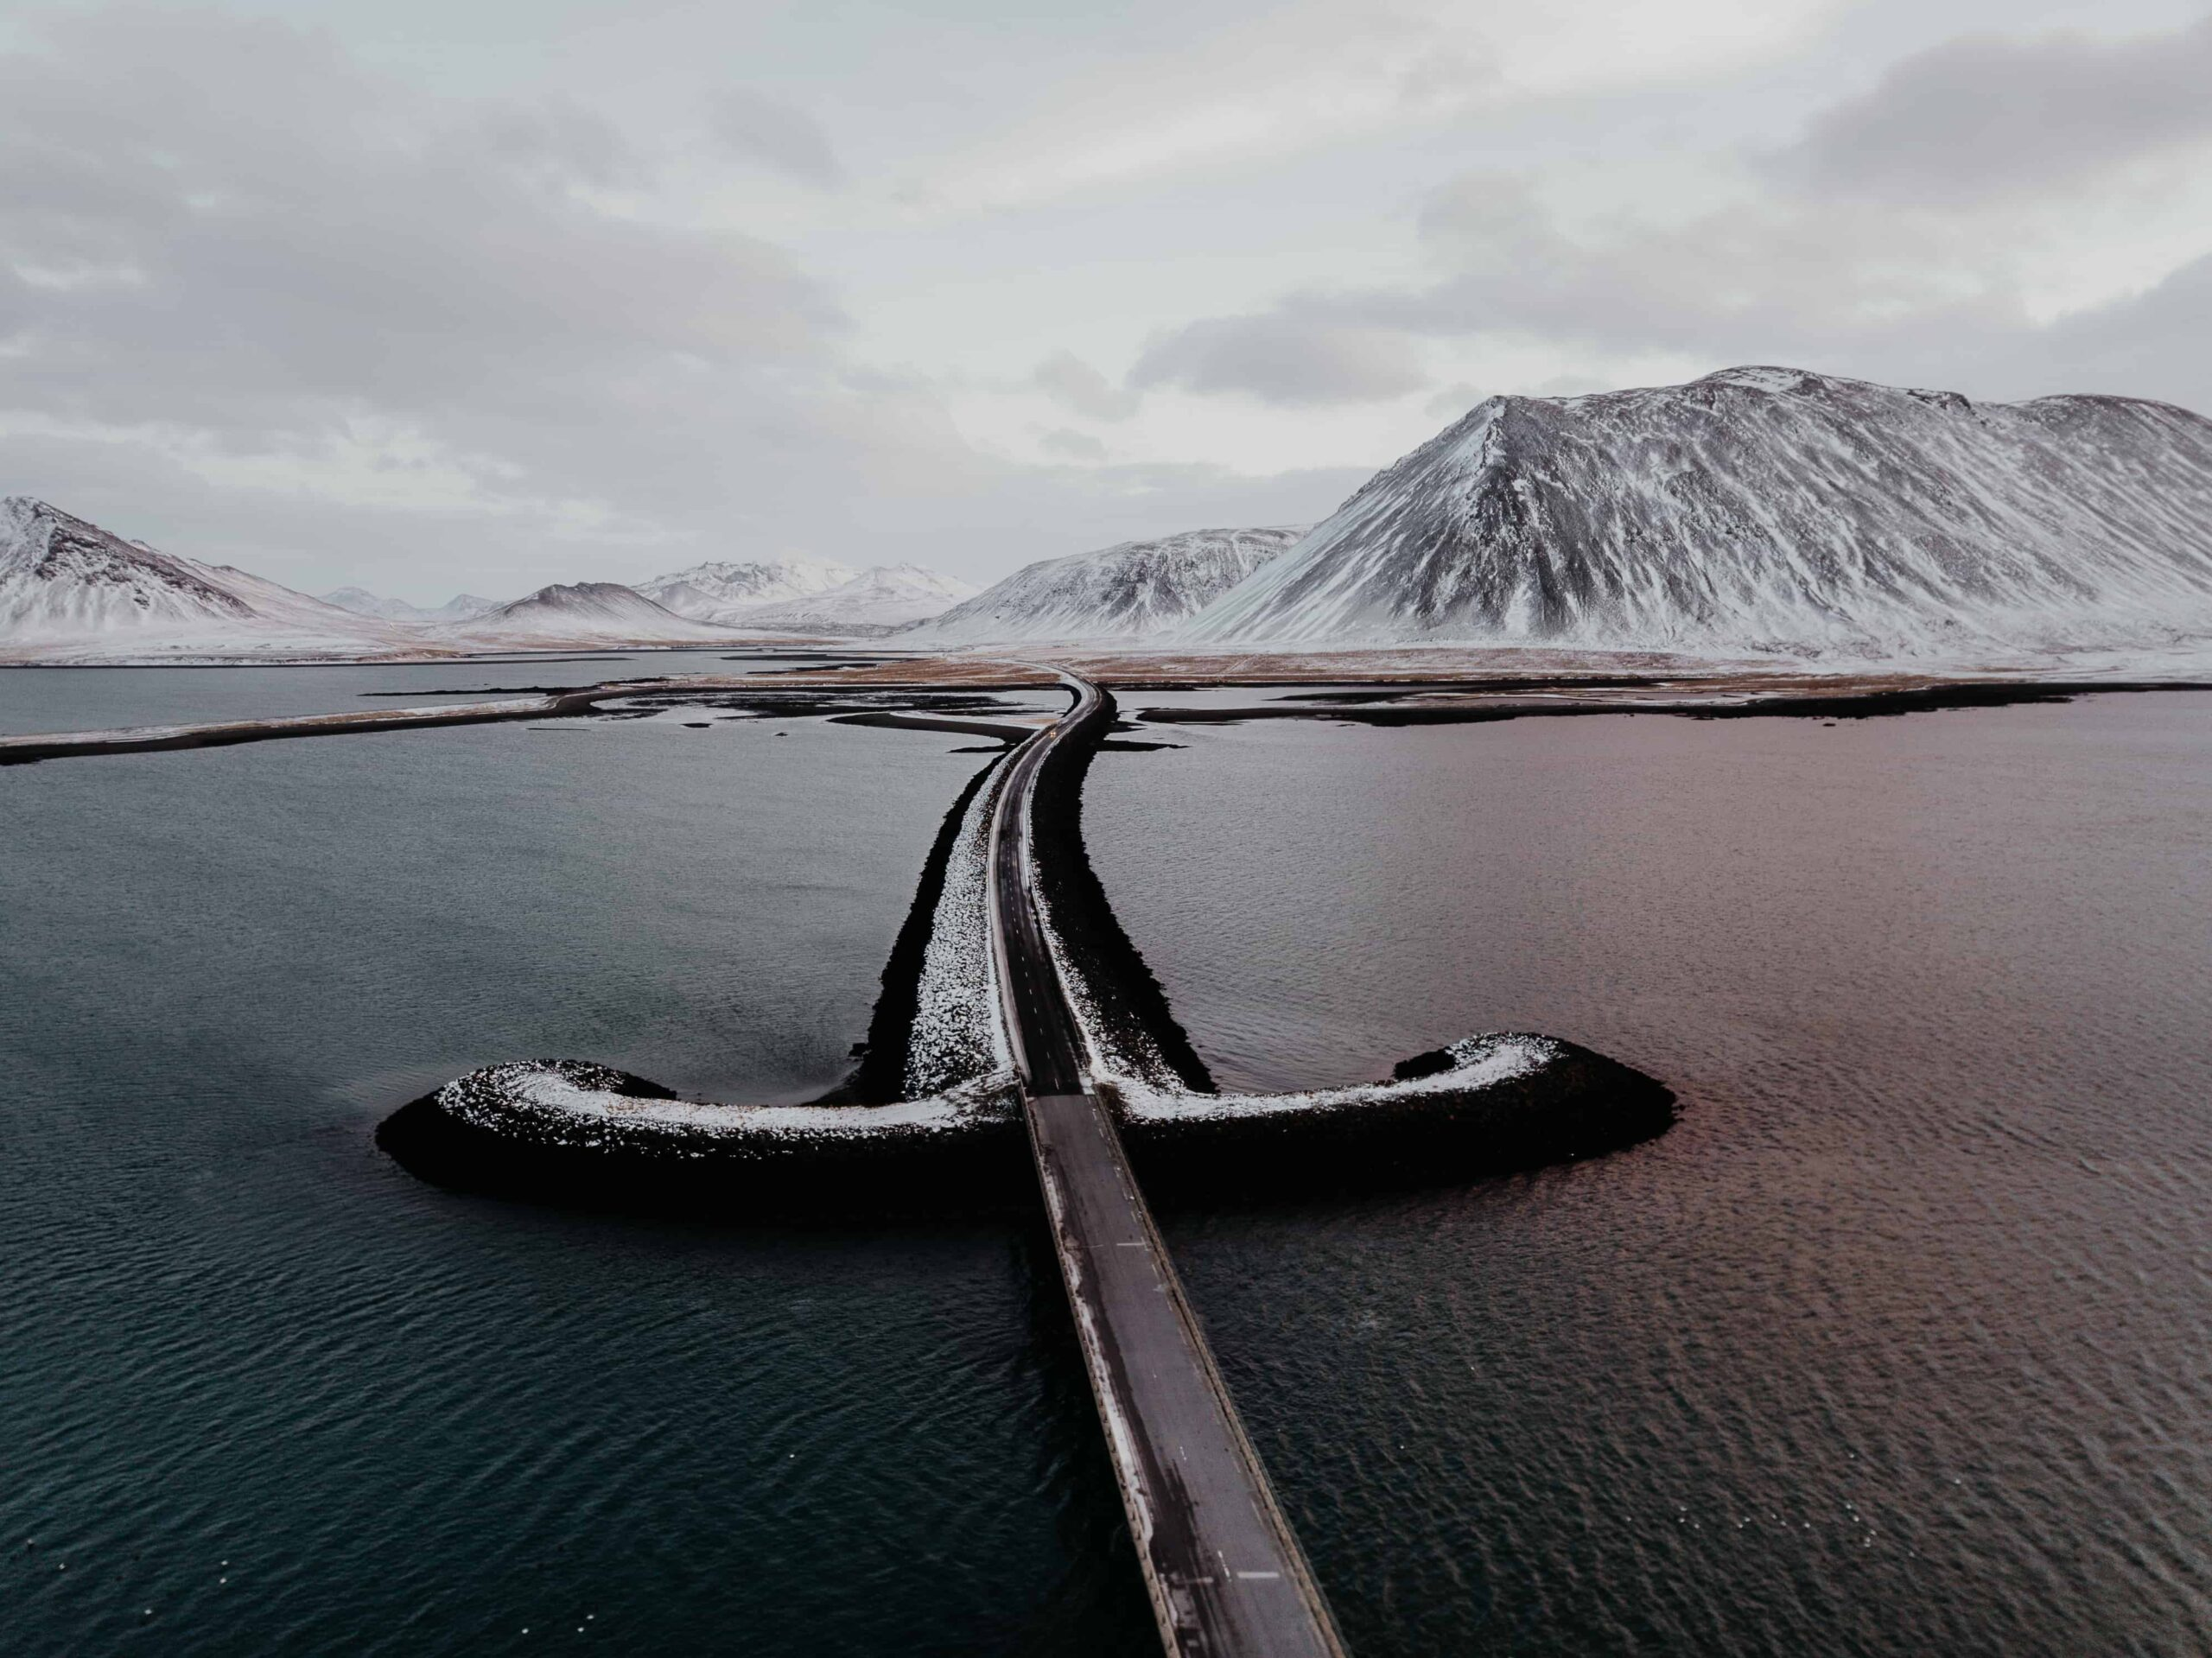 Drone flying in IcelandDrone flying in Iceland, road in Iceland seen from a drone